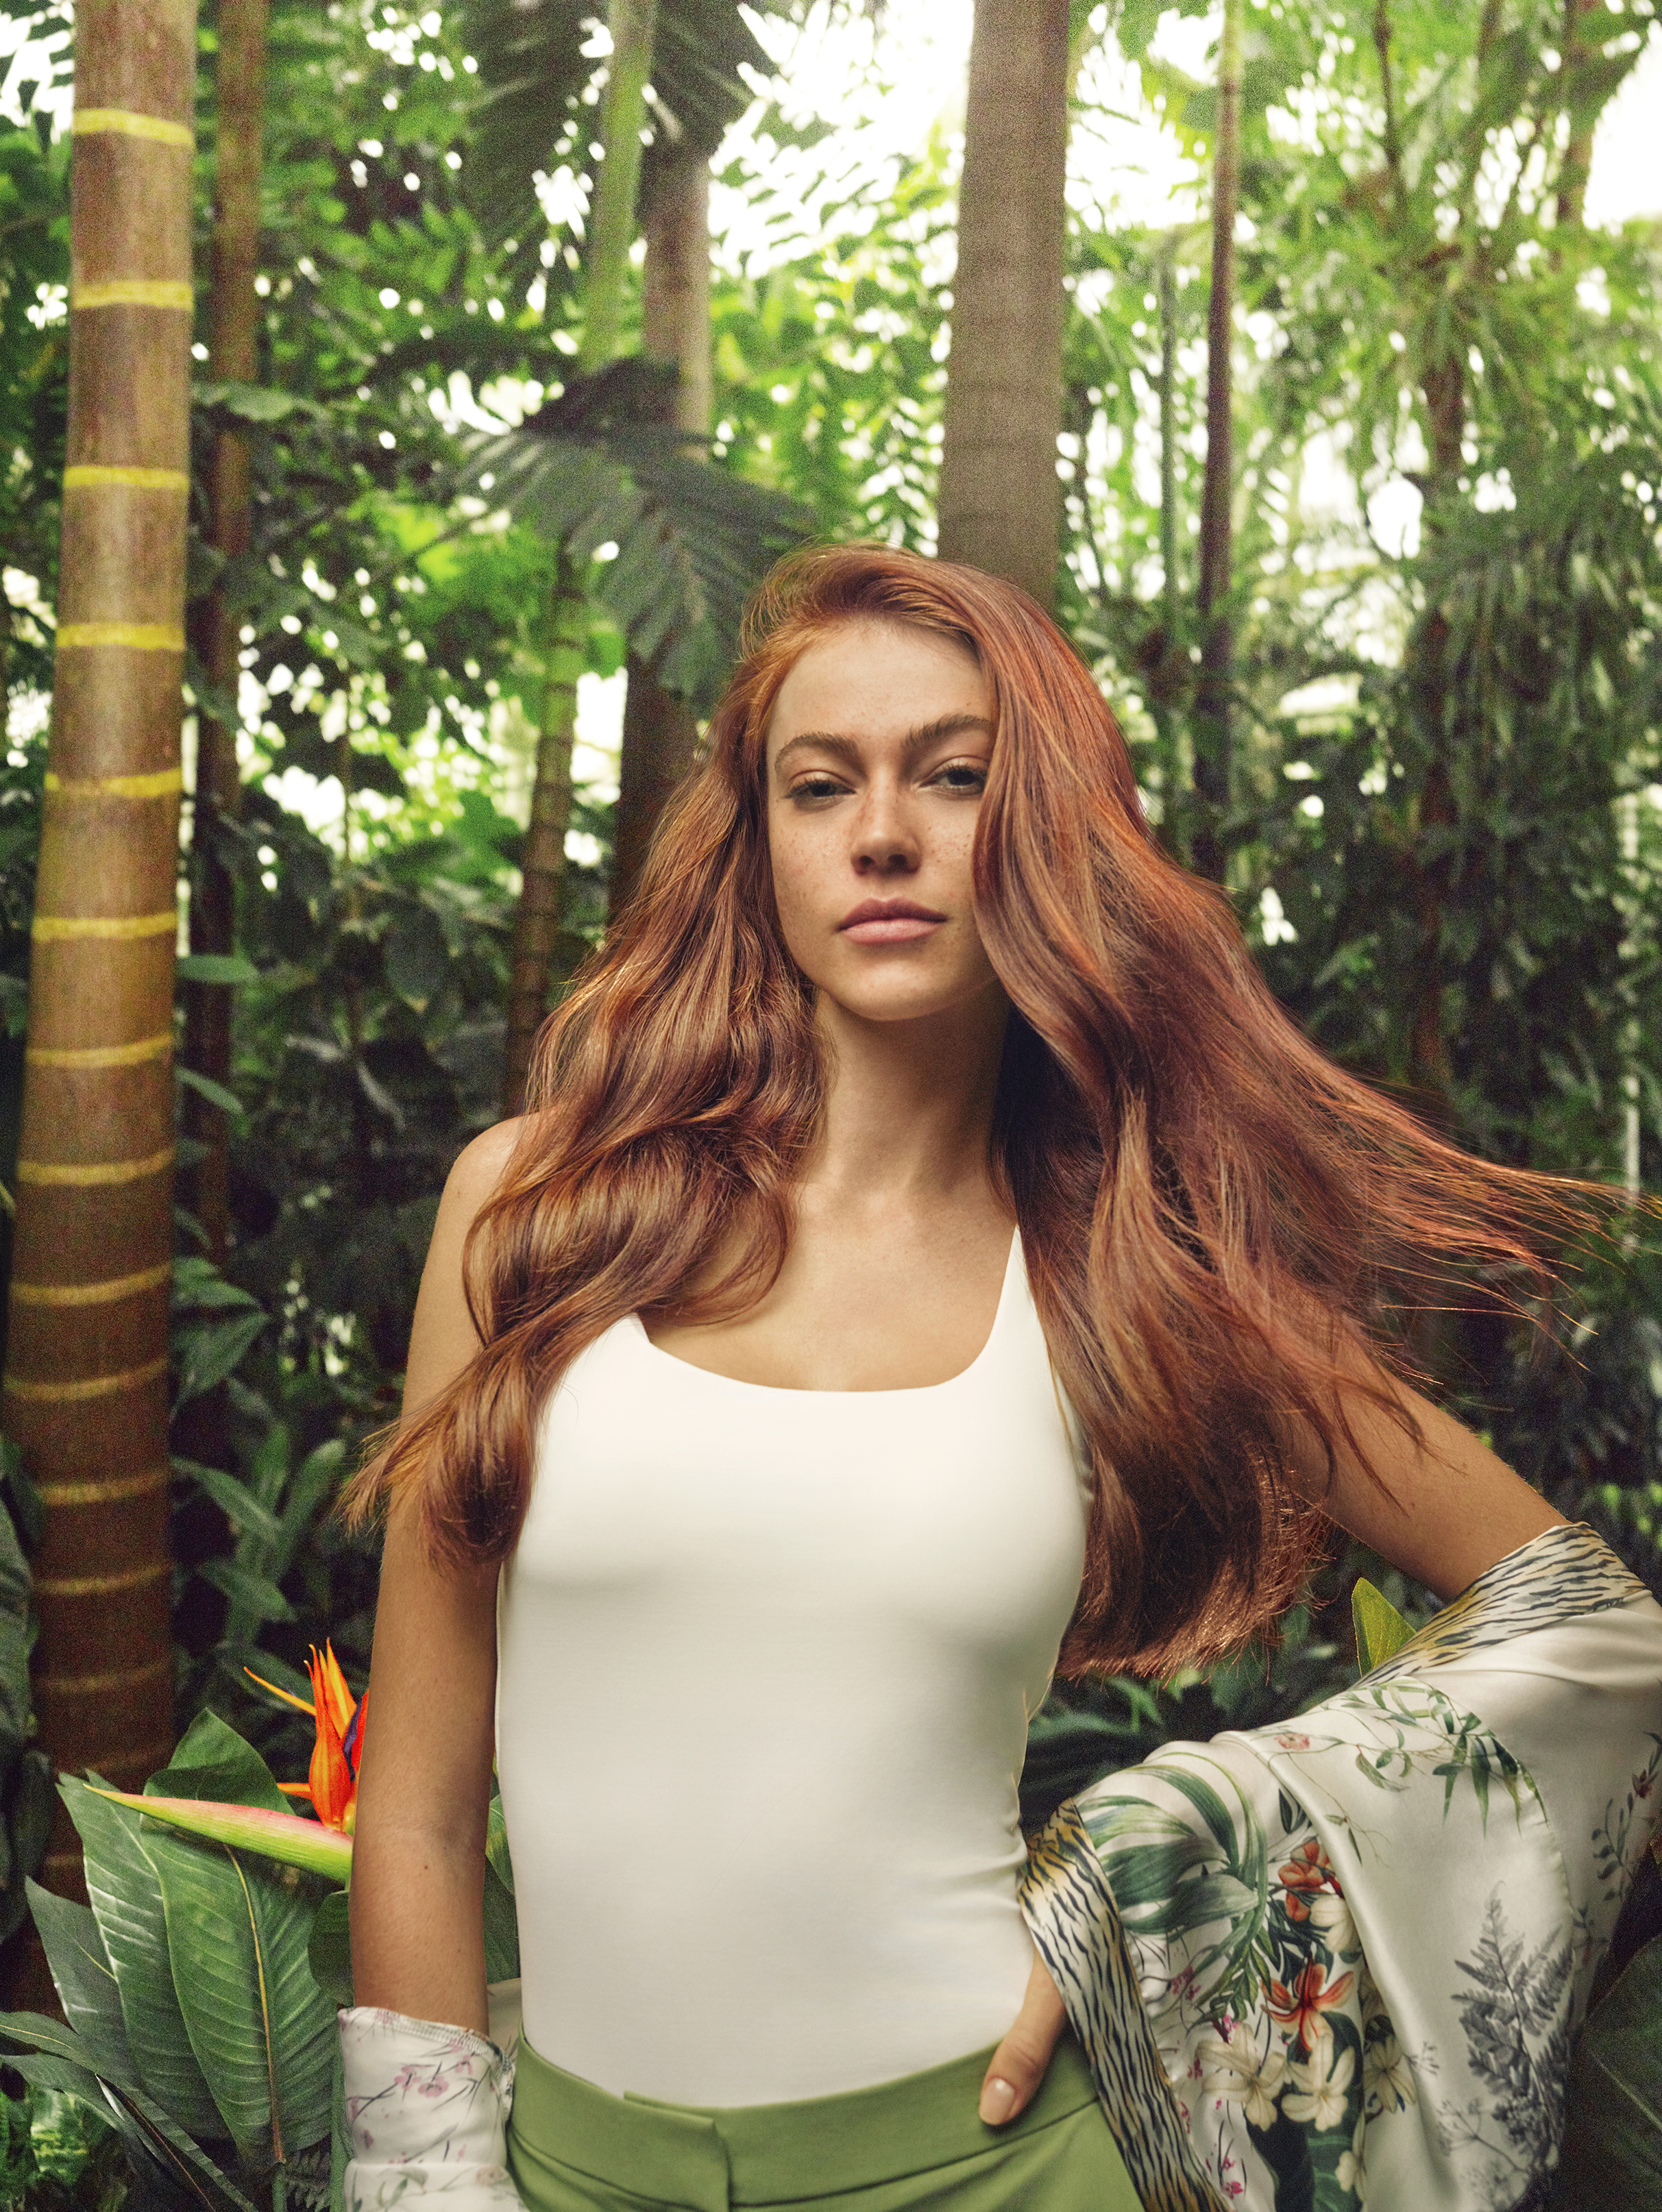 Herbal Essences Calls On Women To Flaunt The Hair Mama Nature Gave Them Lbbonline